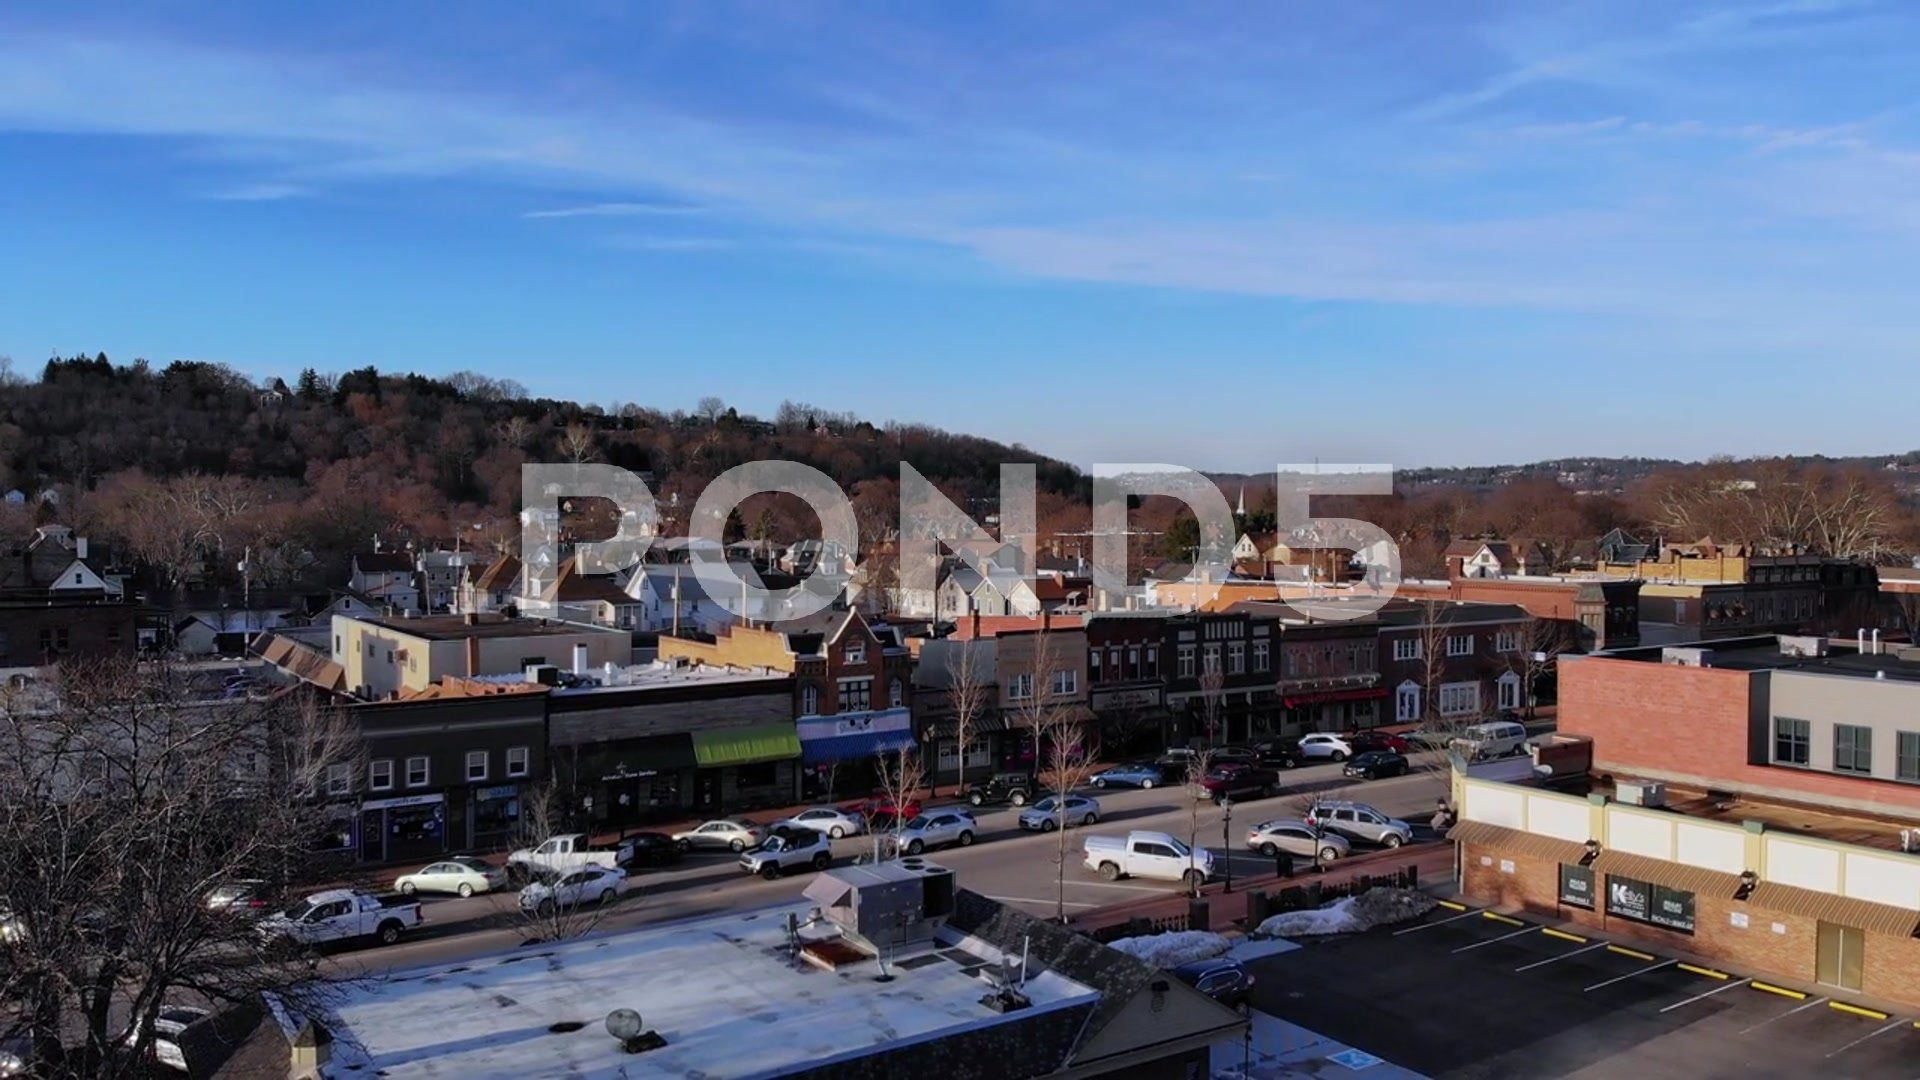 Slow Rising Aerial View of Small Town Business District #AD ,#View#Small#Aerial#Slow